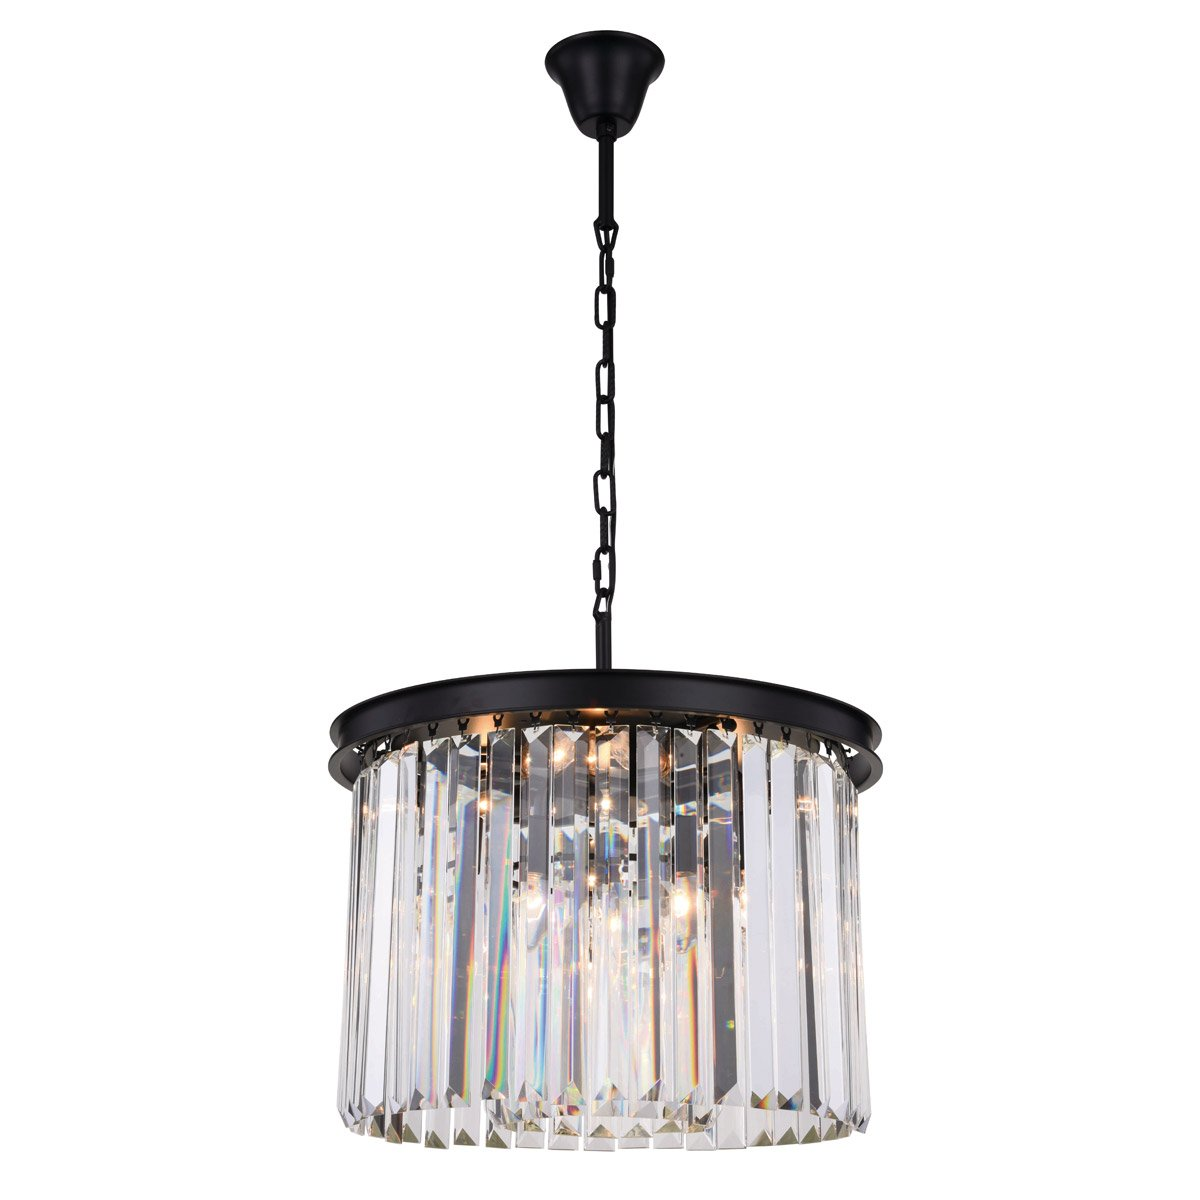 Sydney 20 Crystal Pendant Chandelier With 6 Lights - Matte Black Finish And Clear Crystal Chandelier